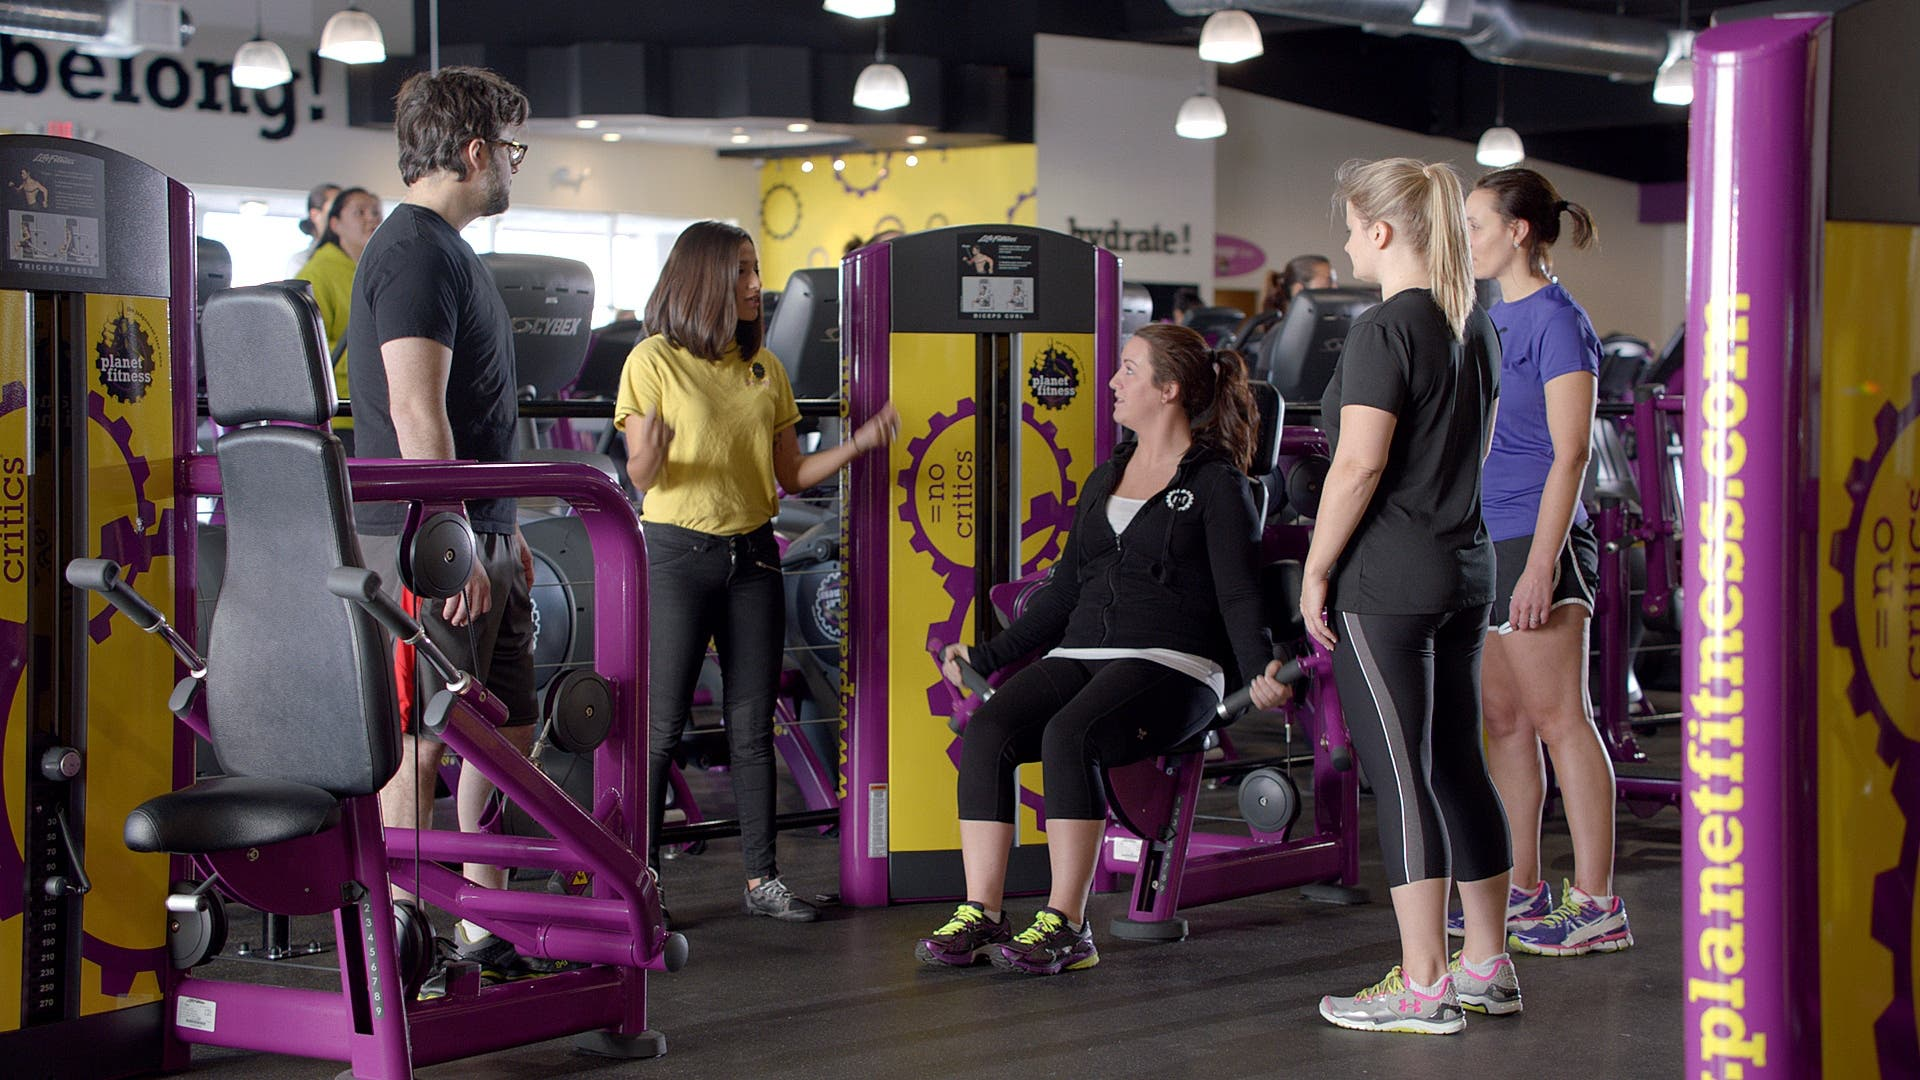 Planet Fitness To Open March 31 In Roswell Roswell Ga Patch